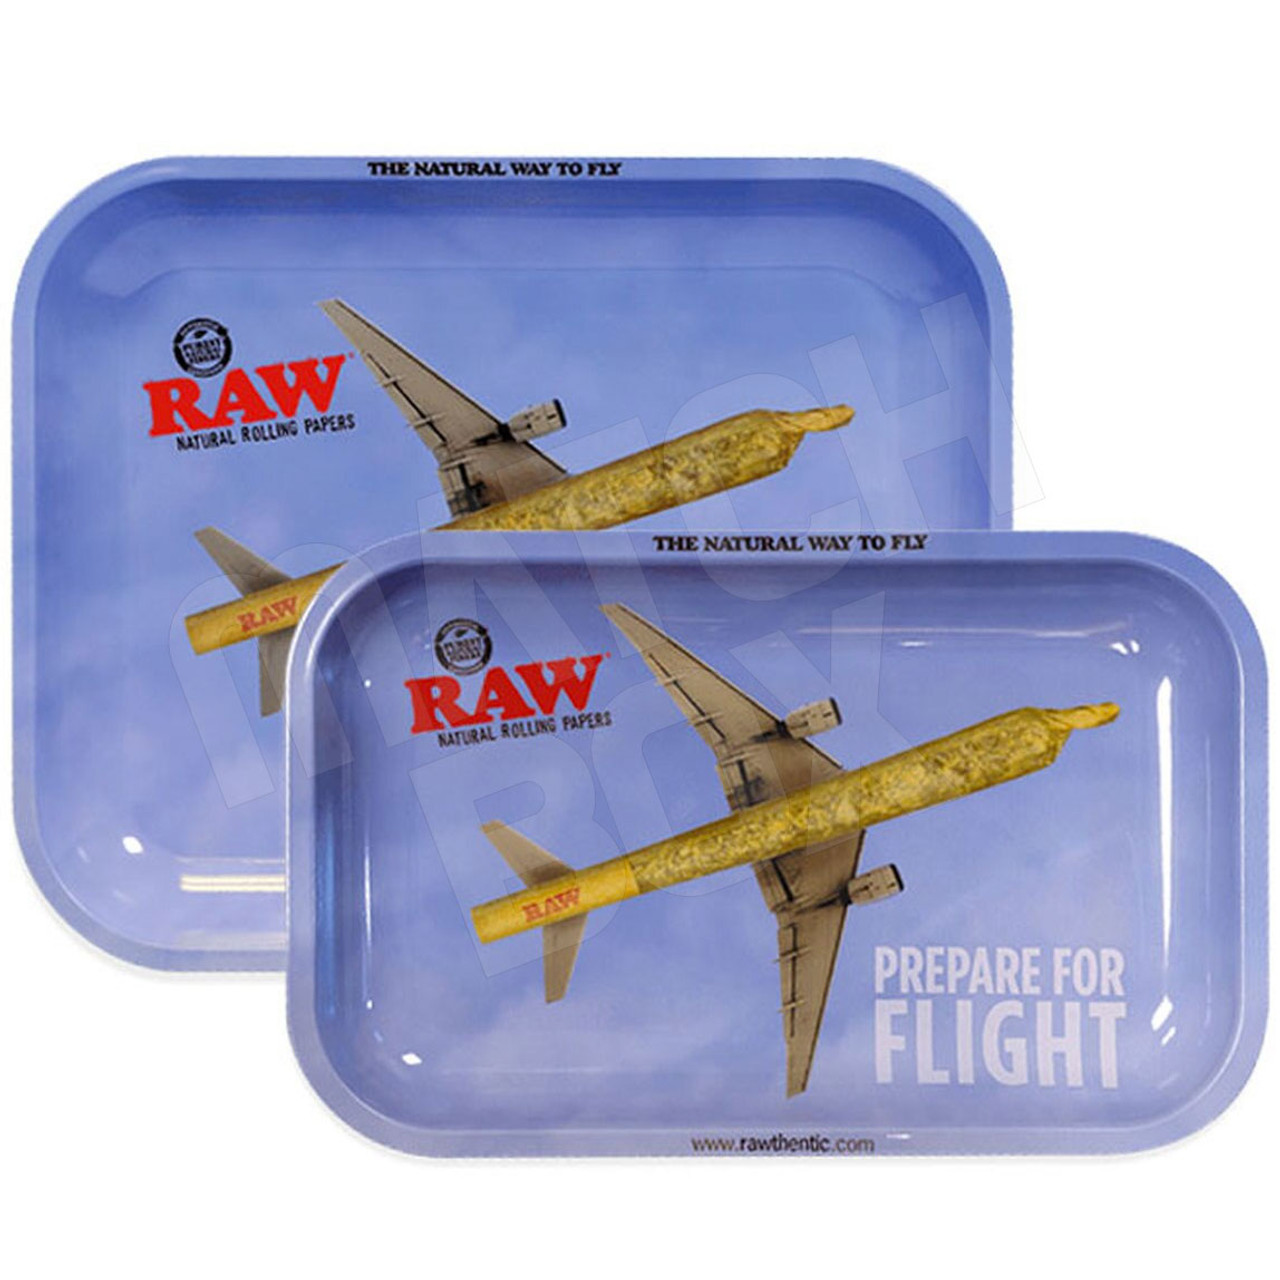 RAW Tray Prepare for Flight LARGE AND SMALL